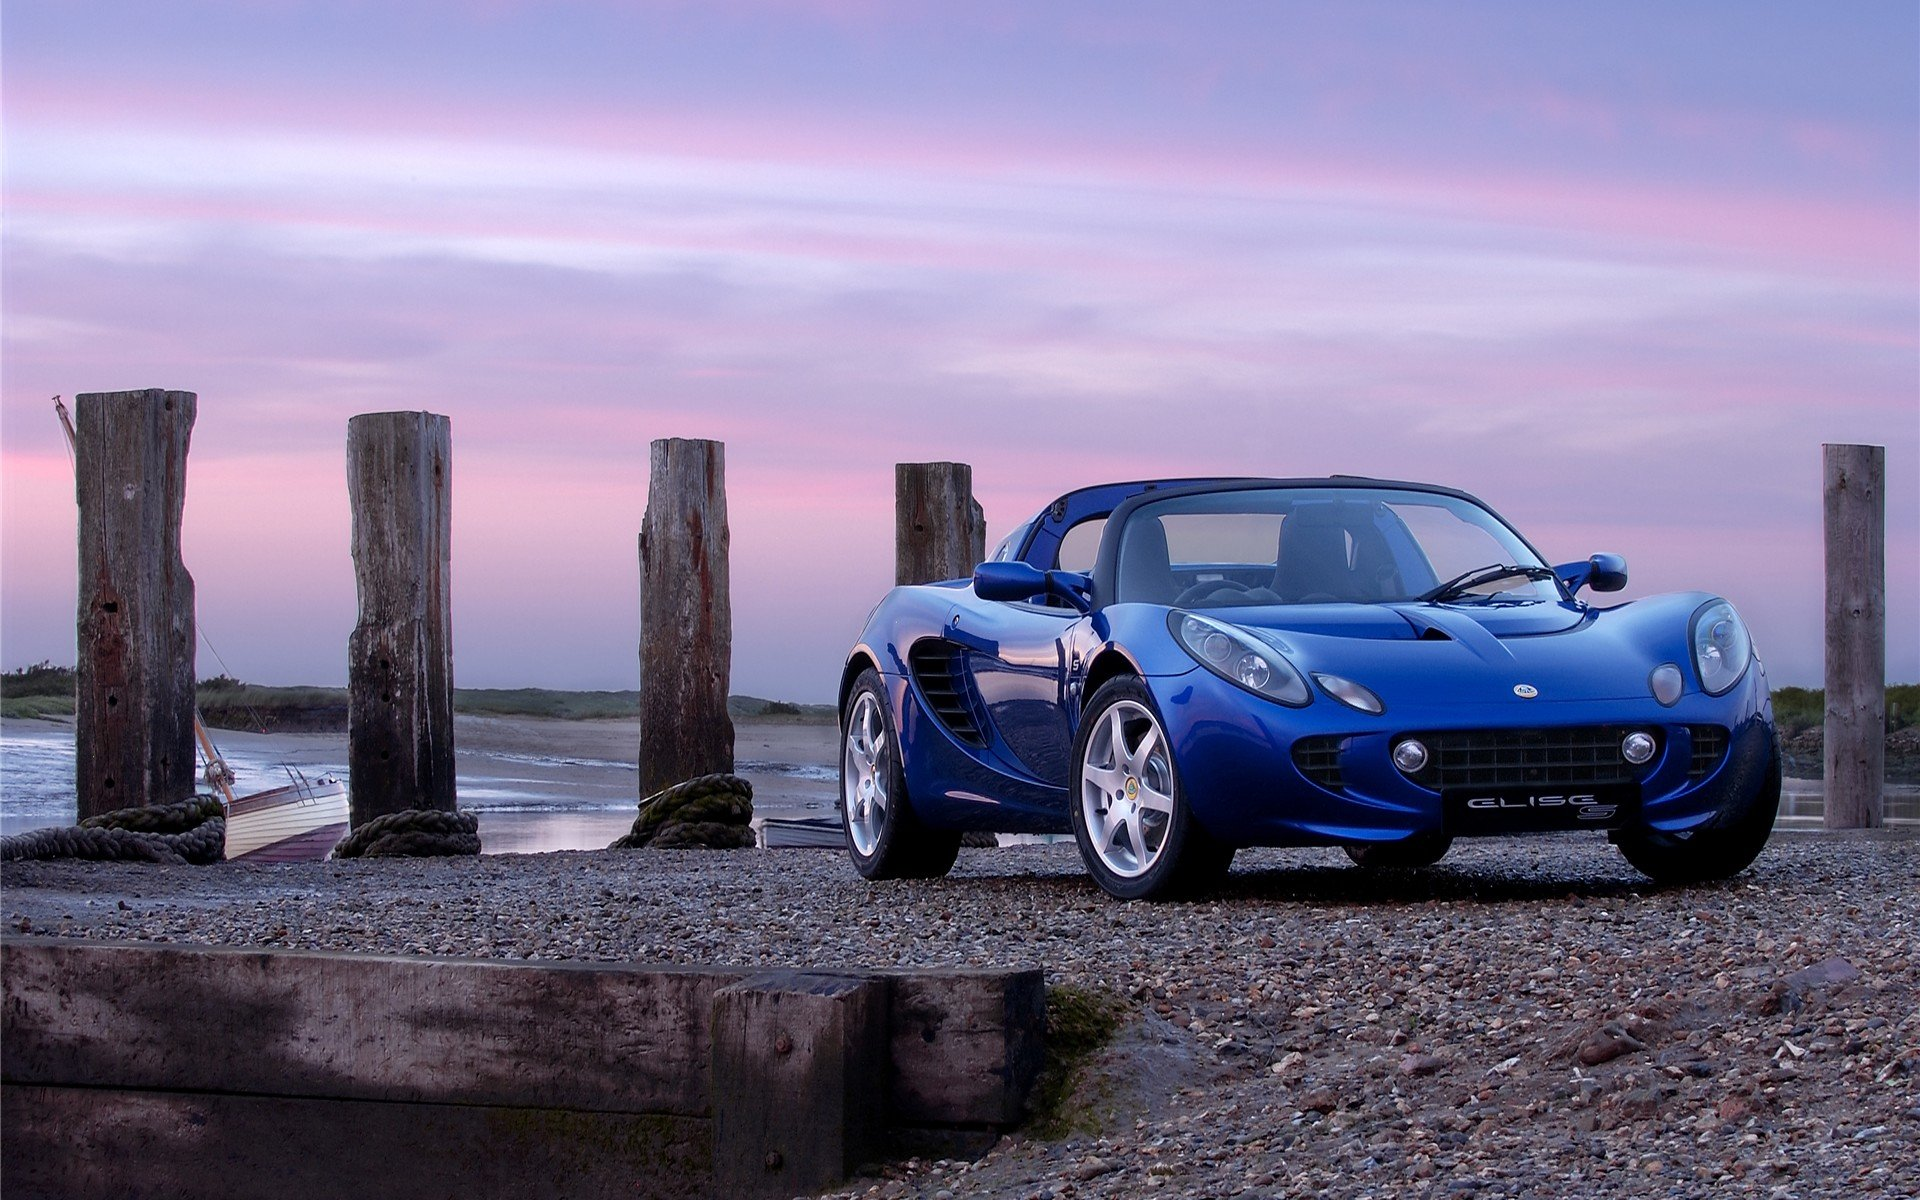 Best Lotus Elise Wallpaper Id For High Resolution Hd 19x10 Pc